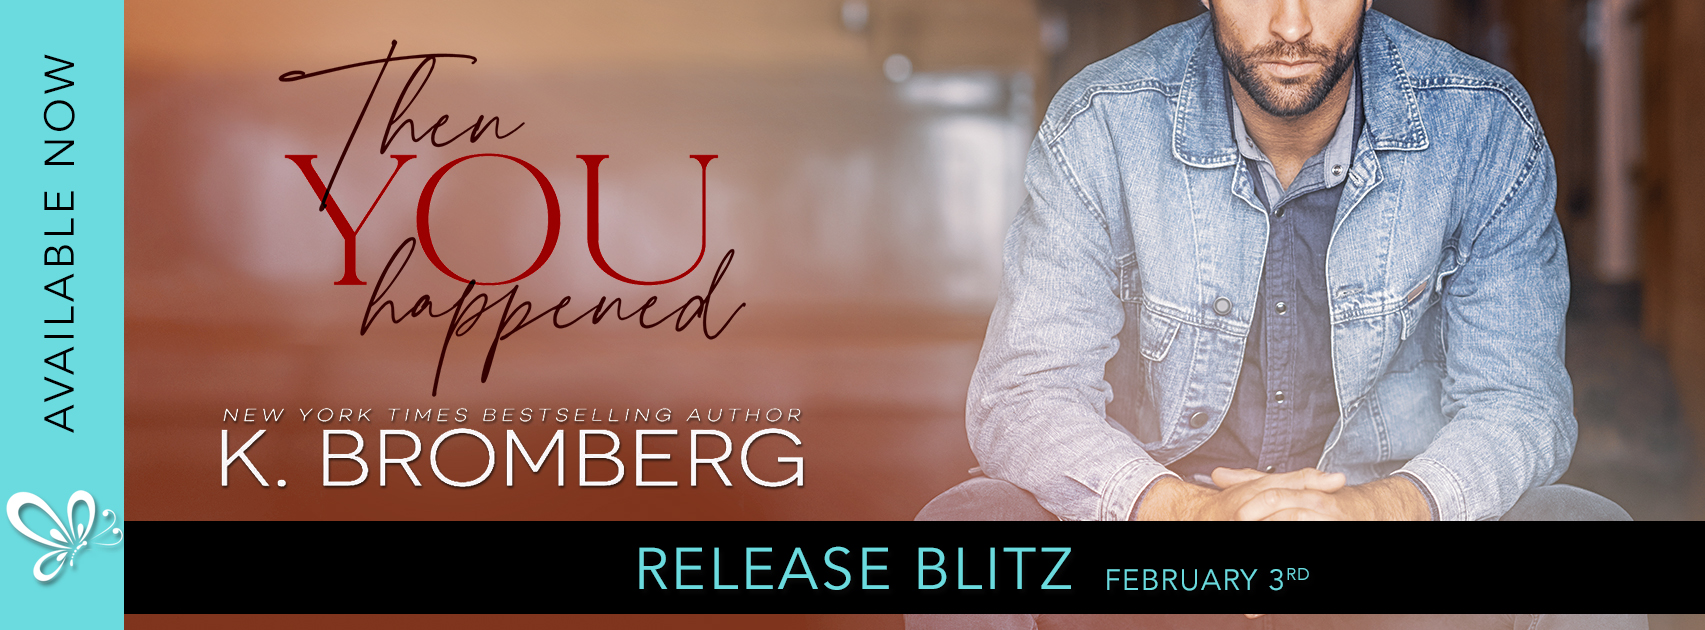 Release Blitz ~ Then You Happened by K. Bromberg